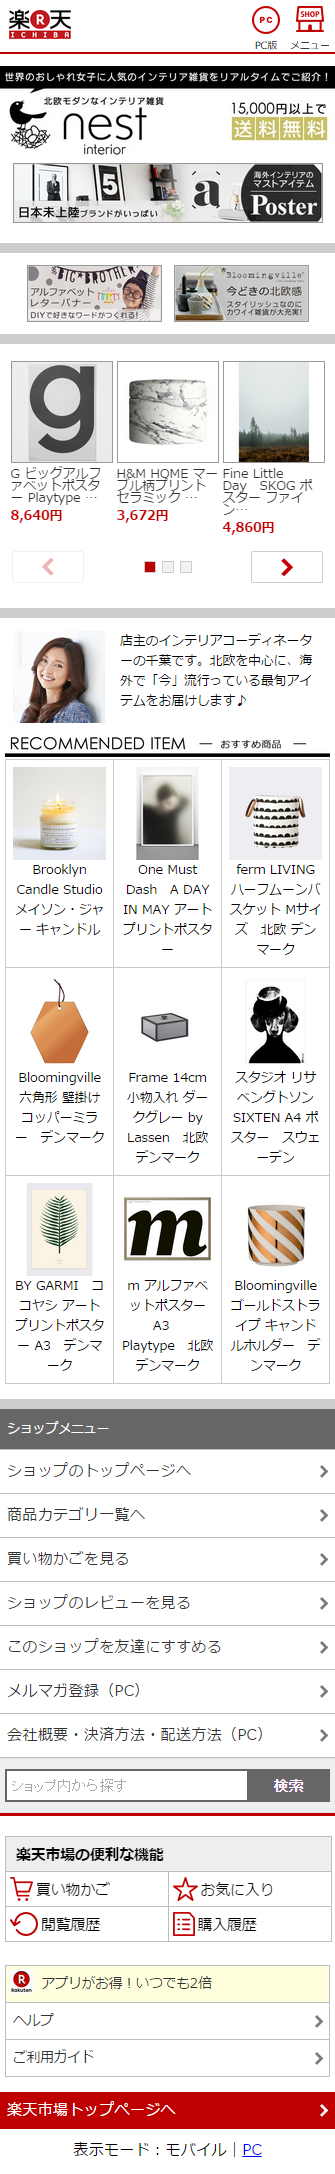 screencapture-www-rakuten-co-jp-nestinterior-1438428941354